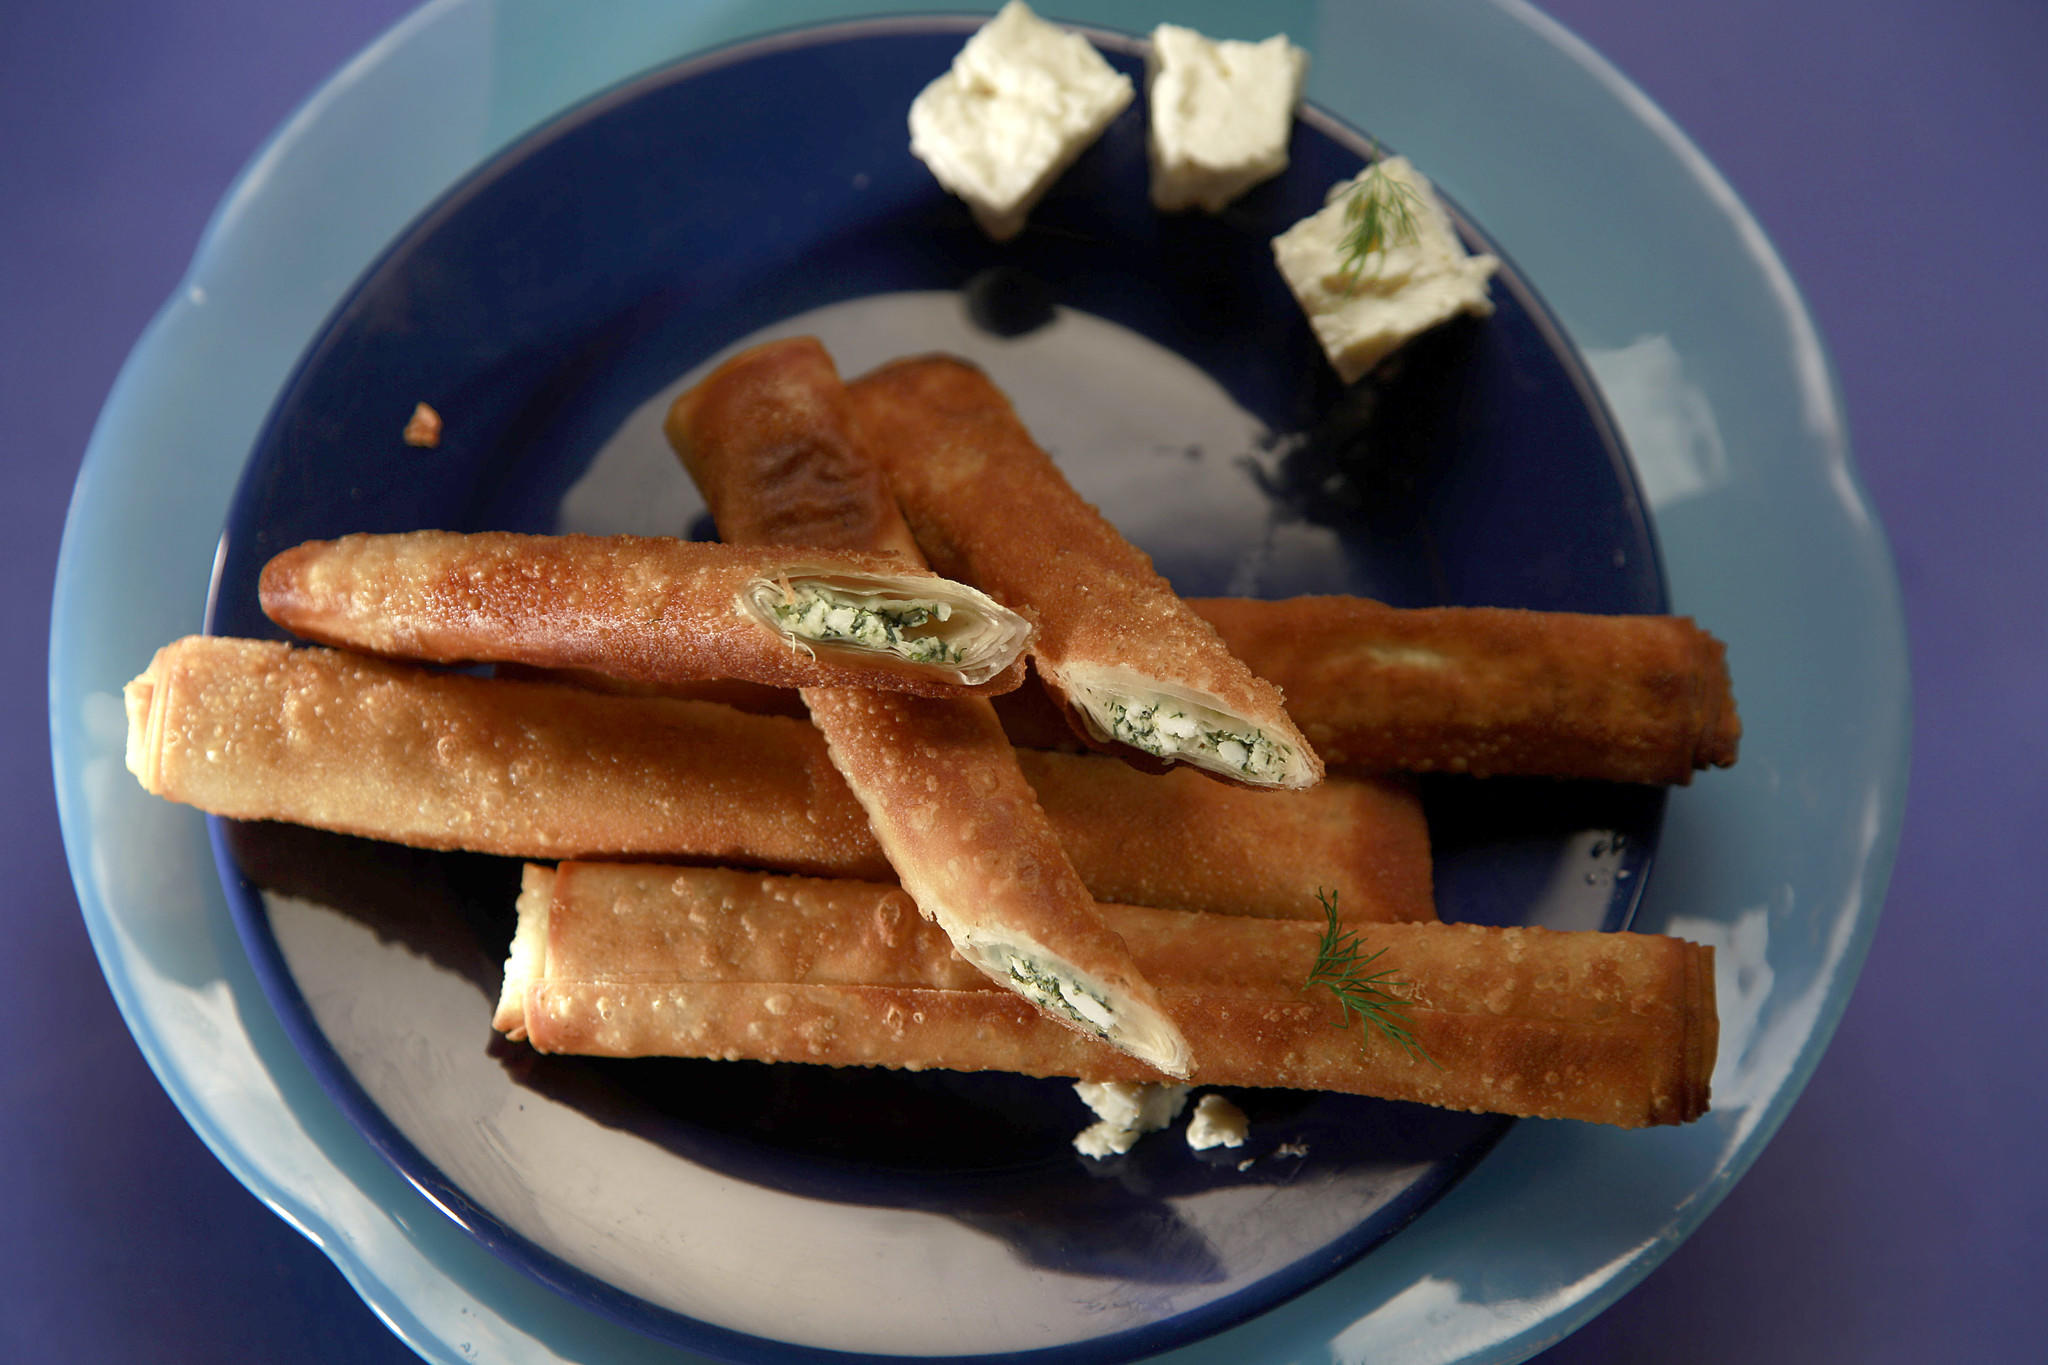 Cheese cigars